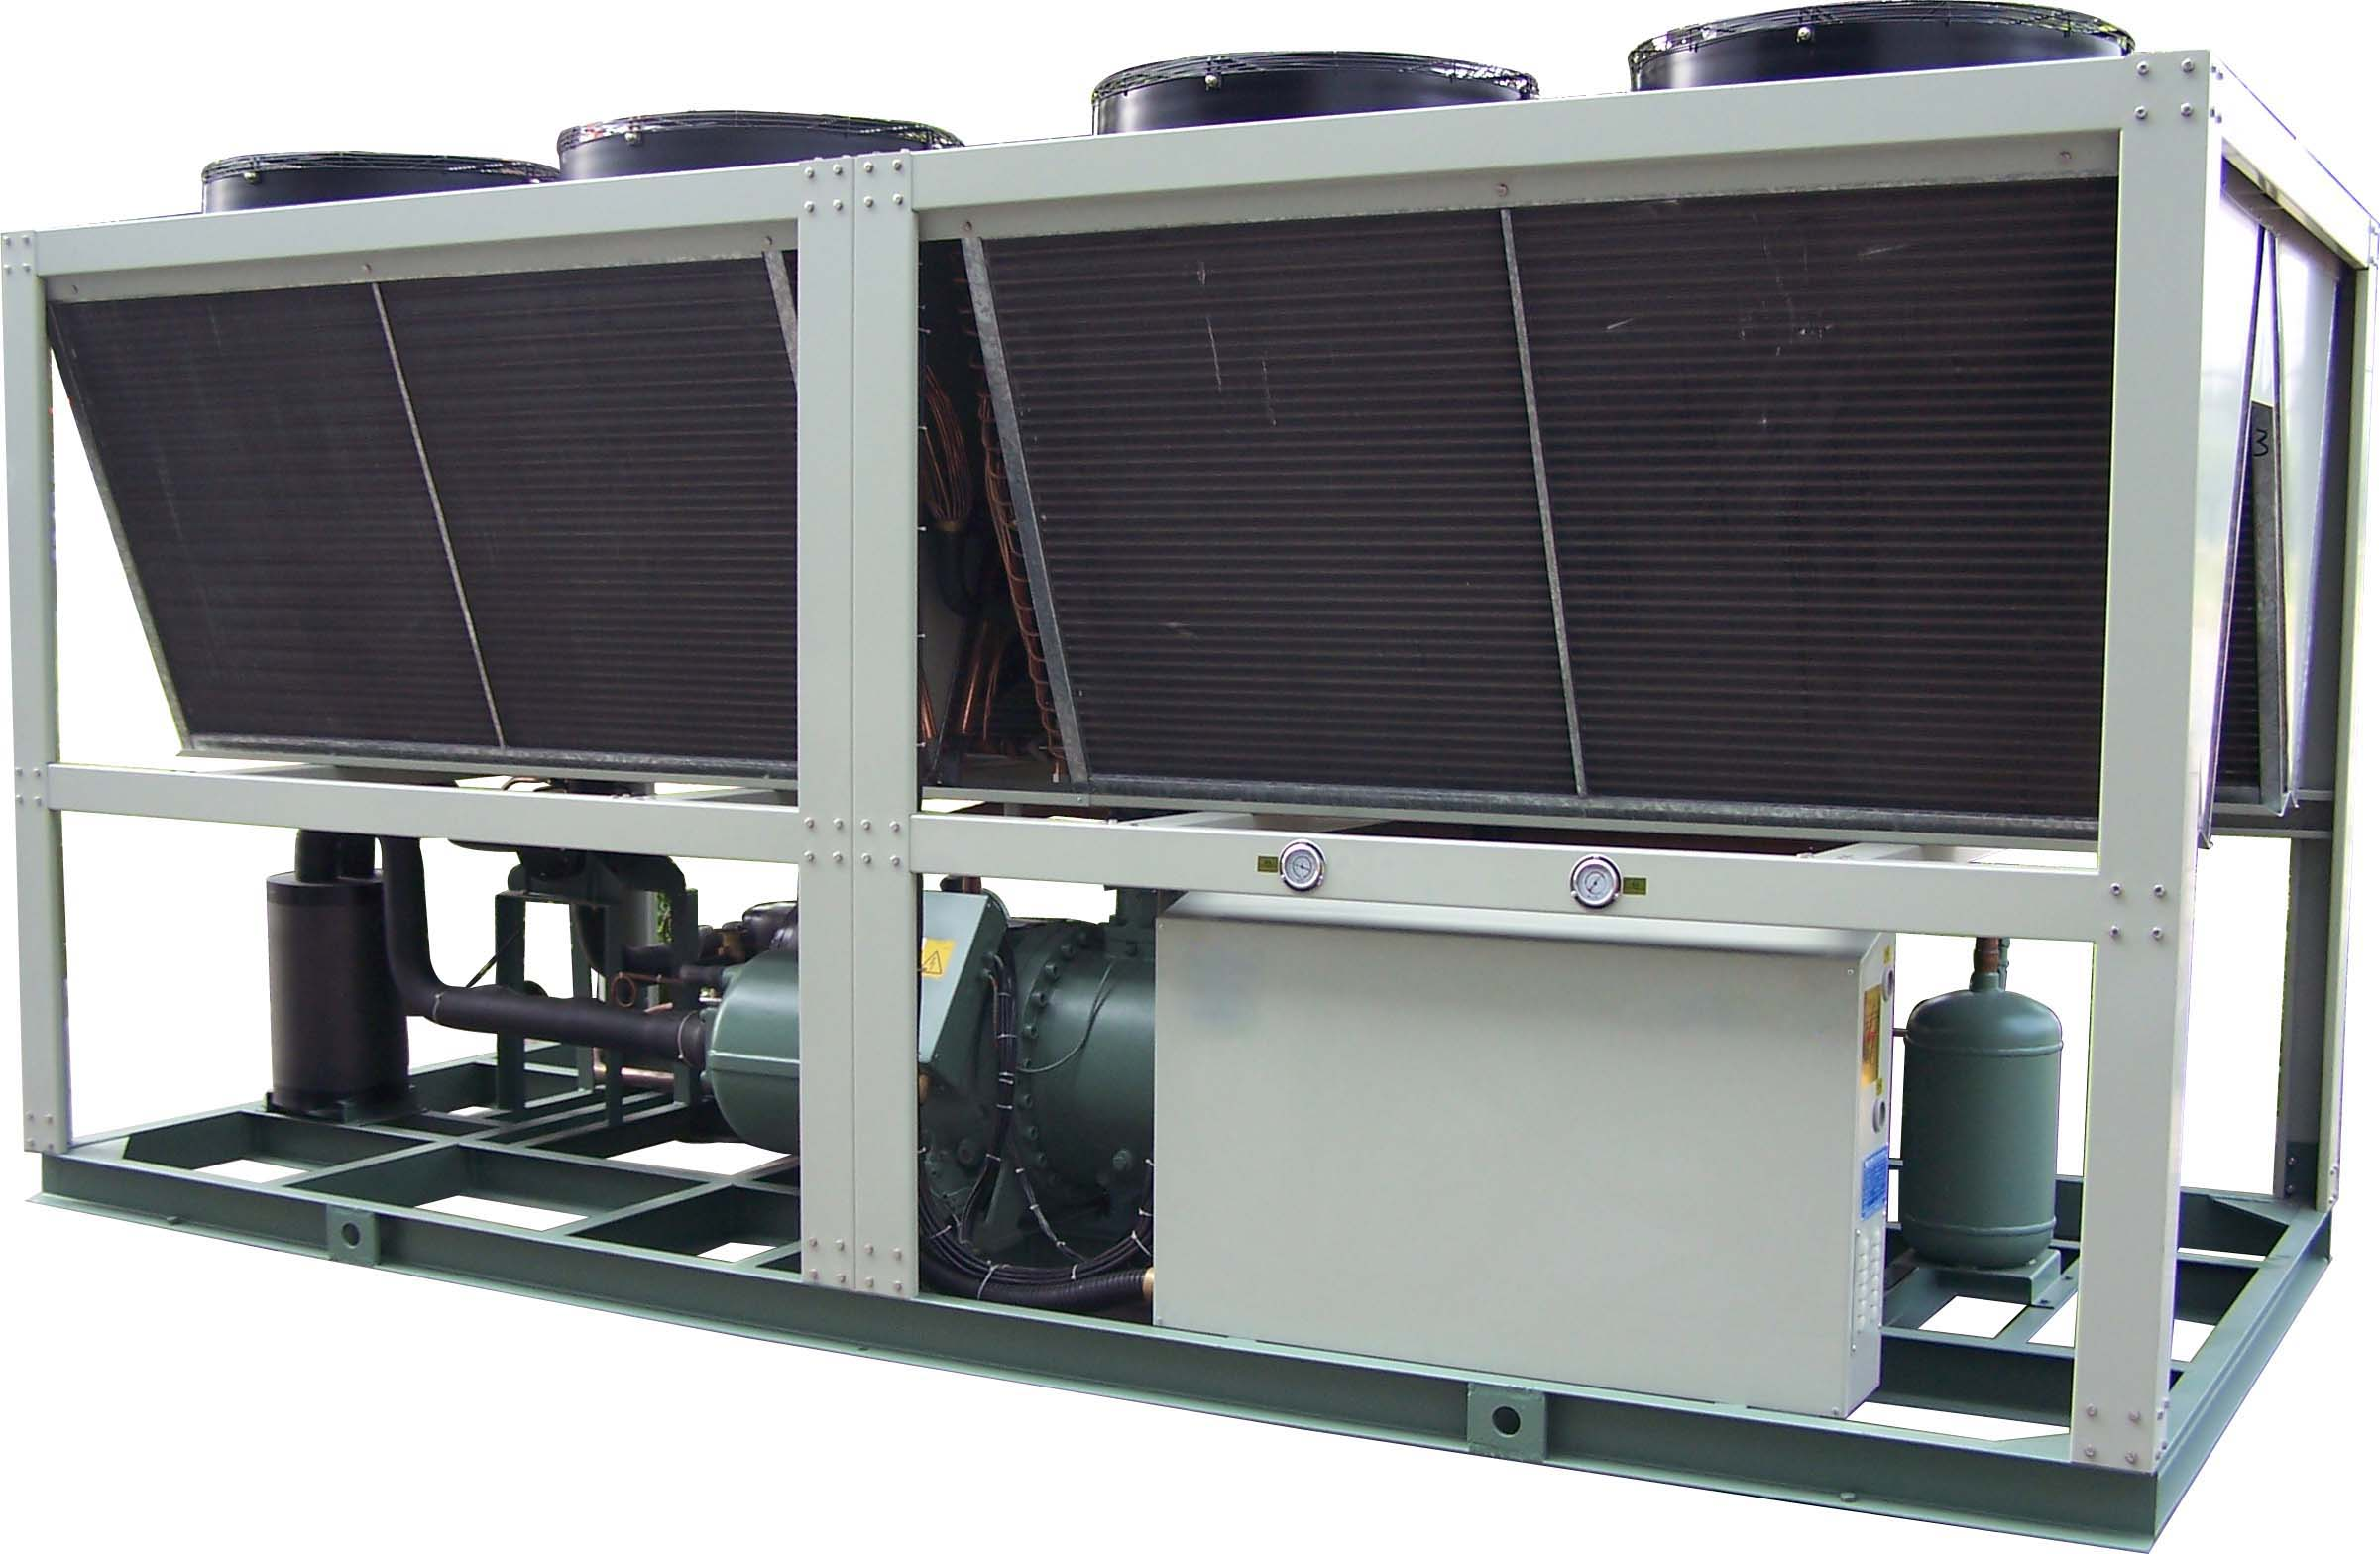 Air Cooled Chiller (With Screw Compressor)